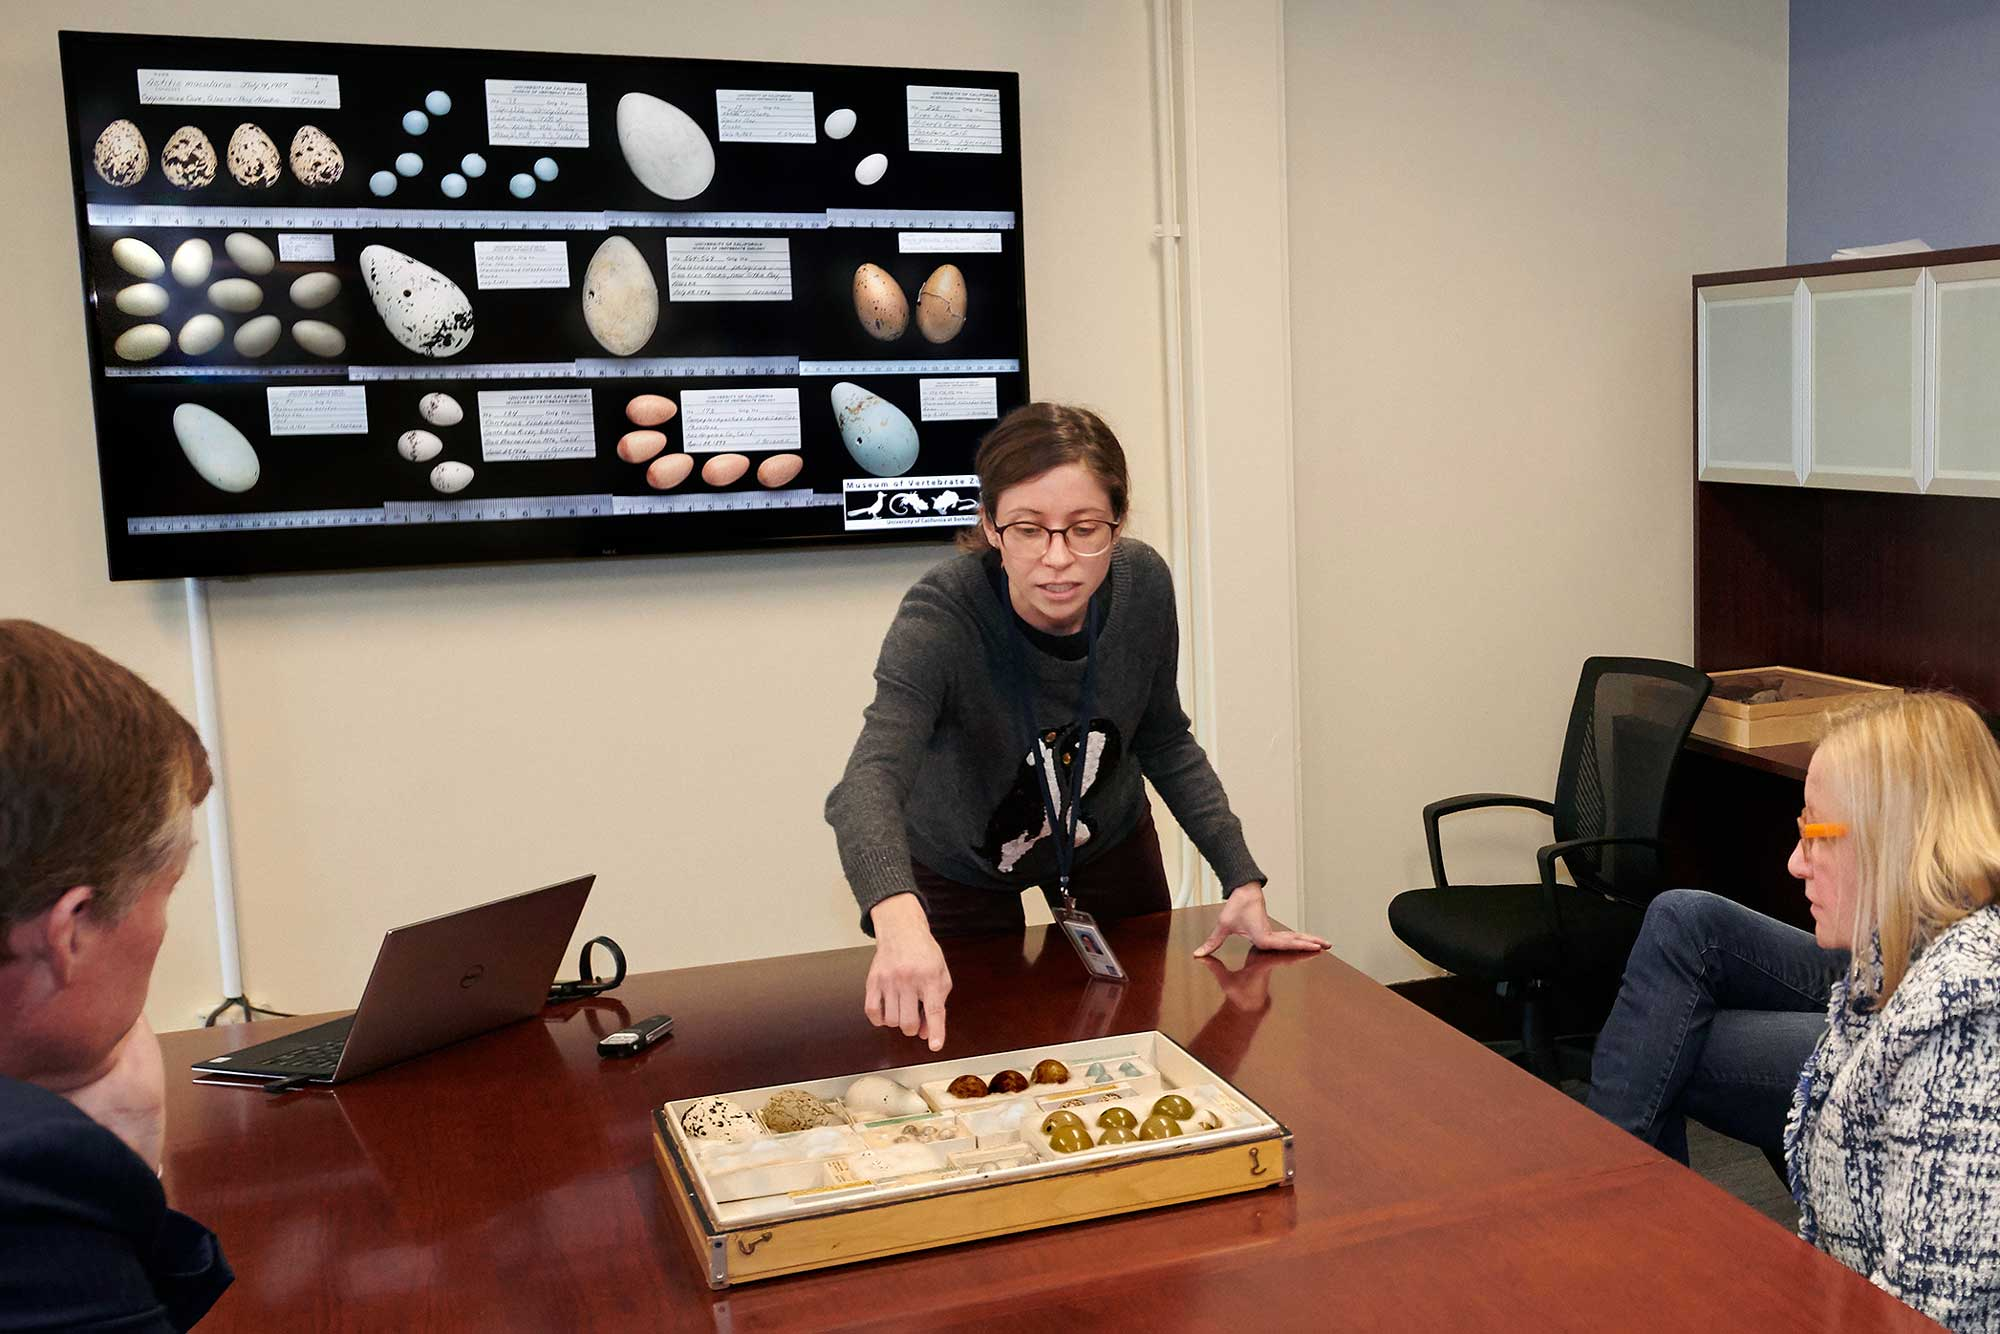 A woman points to egg specimens in a tray while two people look on.